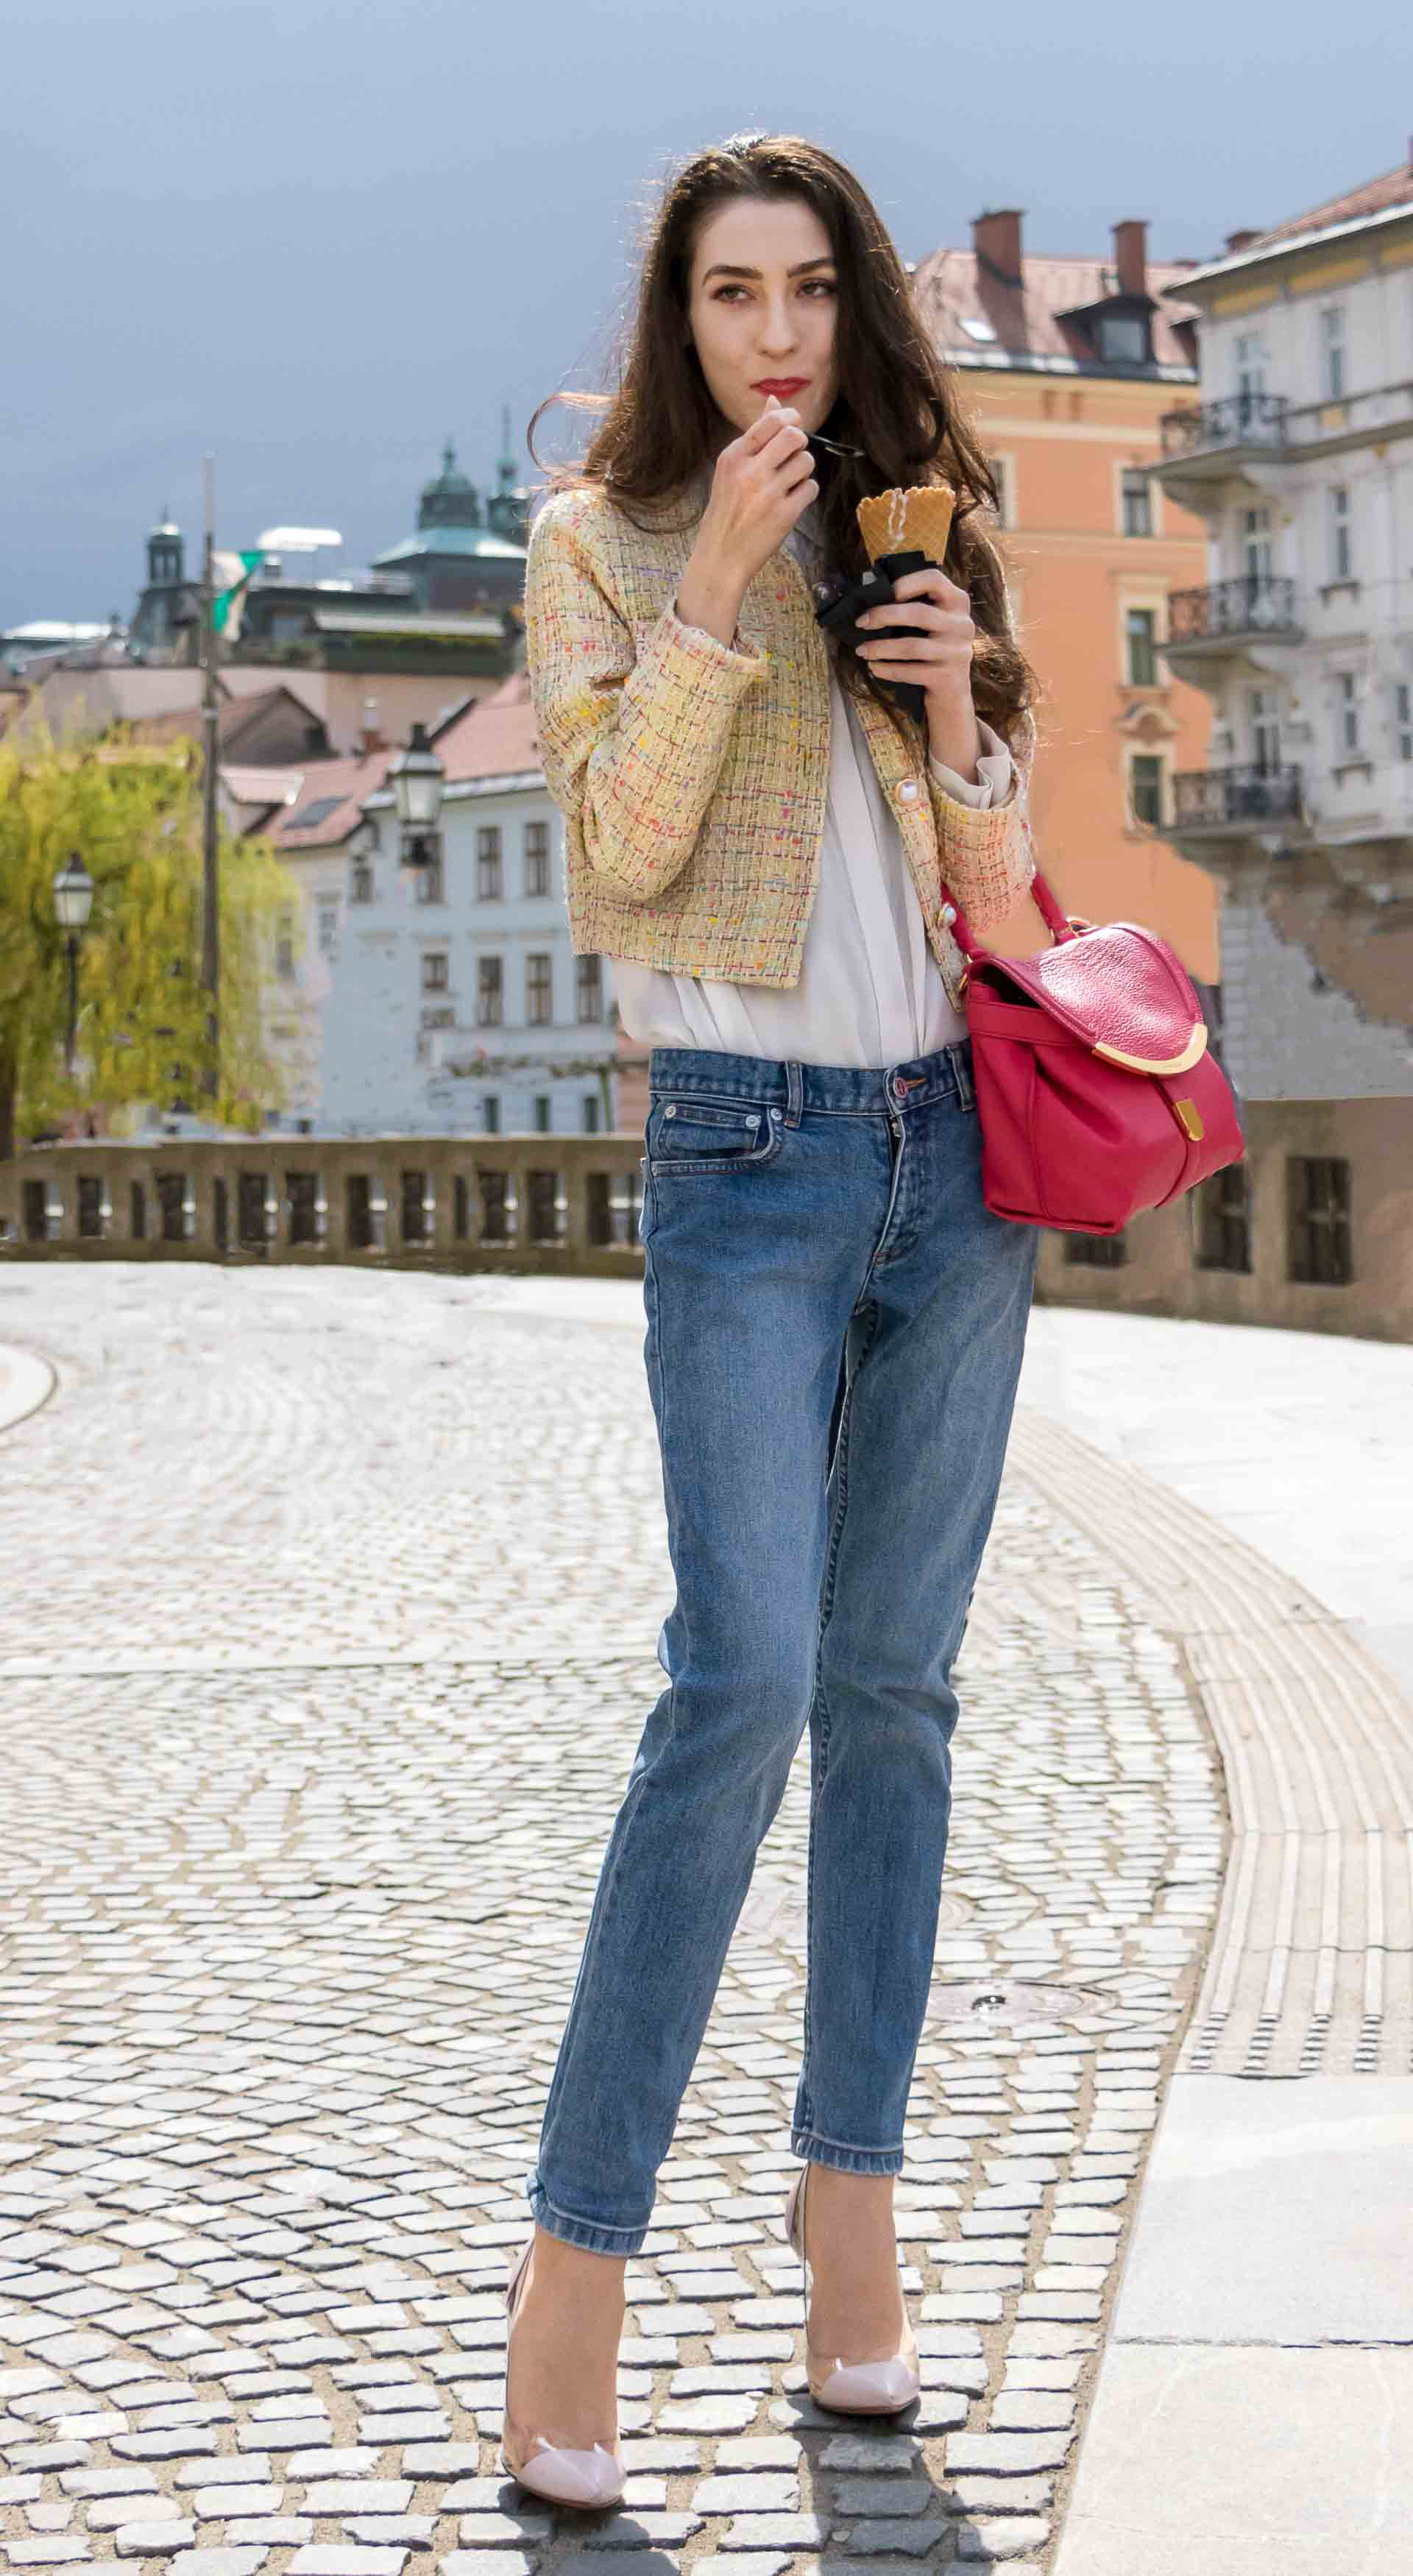 Veronika Lipar Fashion Blogger of Brunette from Wall Street dressed in chic casual everyday spring outfit, the yellow tweed jacket from Storets, blue jeans from A.P.C., blush Gianvito Rossi plexi pumps, pink top handle bag and organza white shirt on the street licking ice cream cone